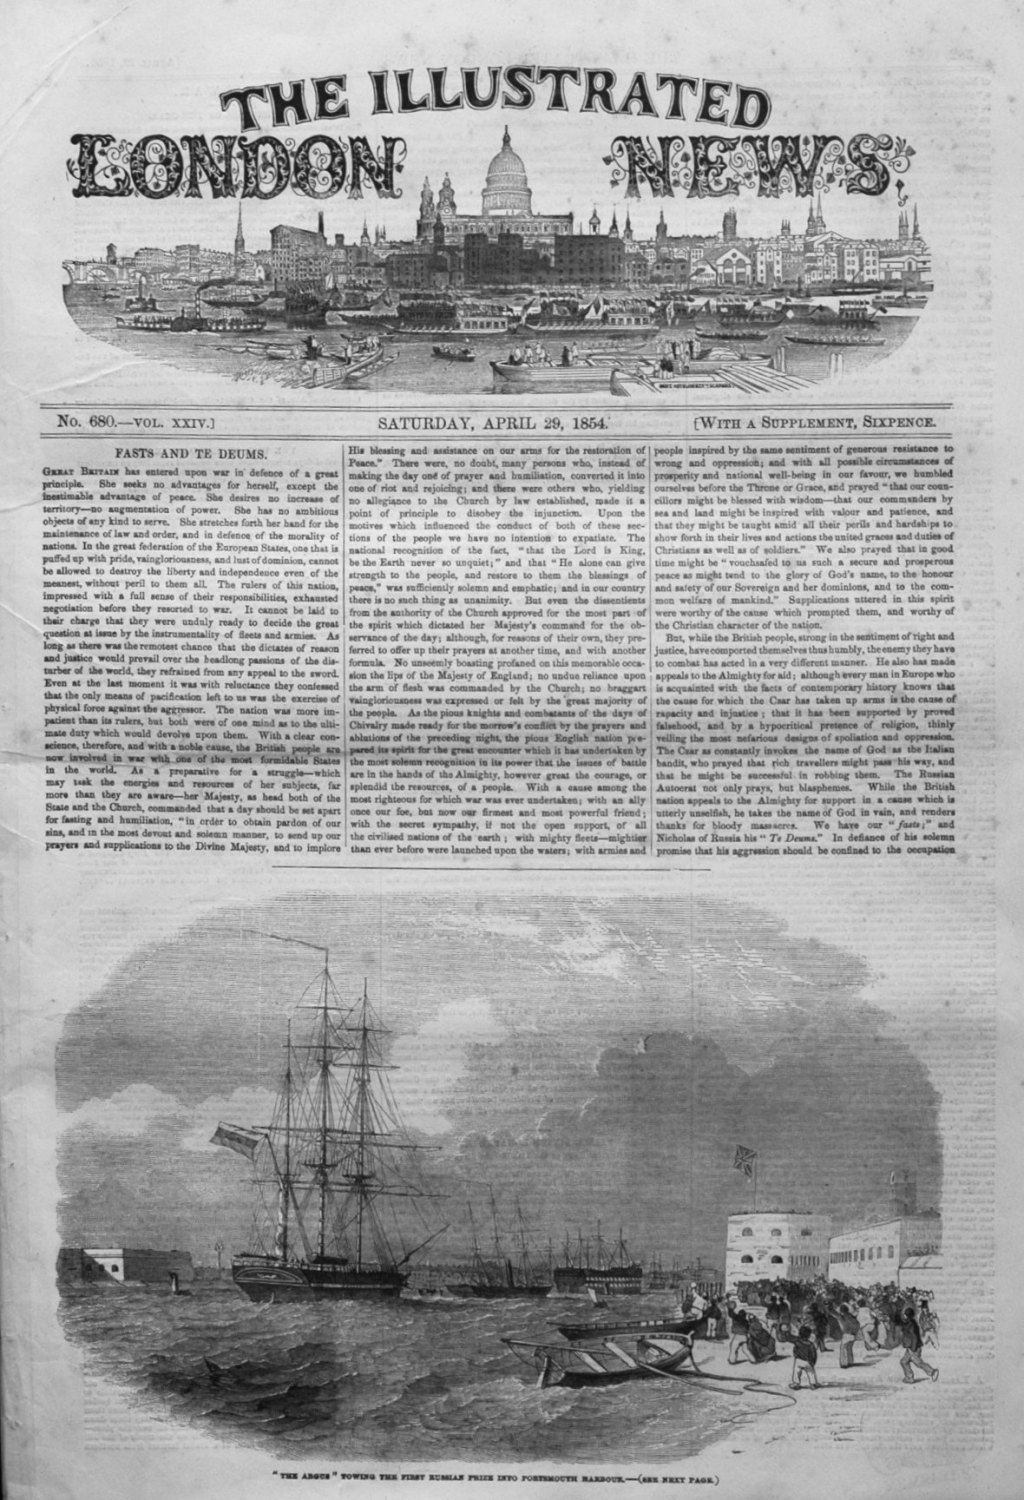 Illustrated London News April 29th 1854.